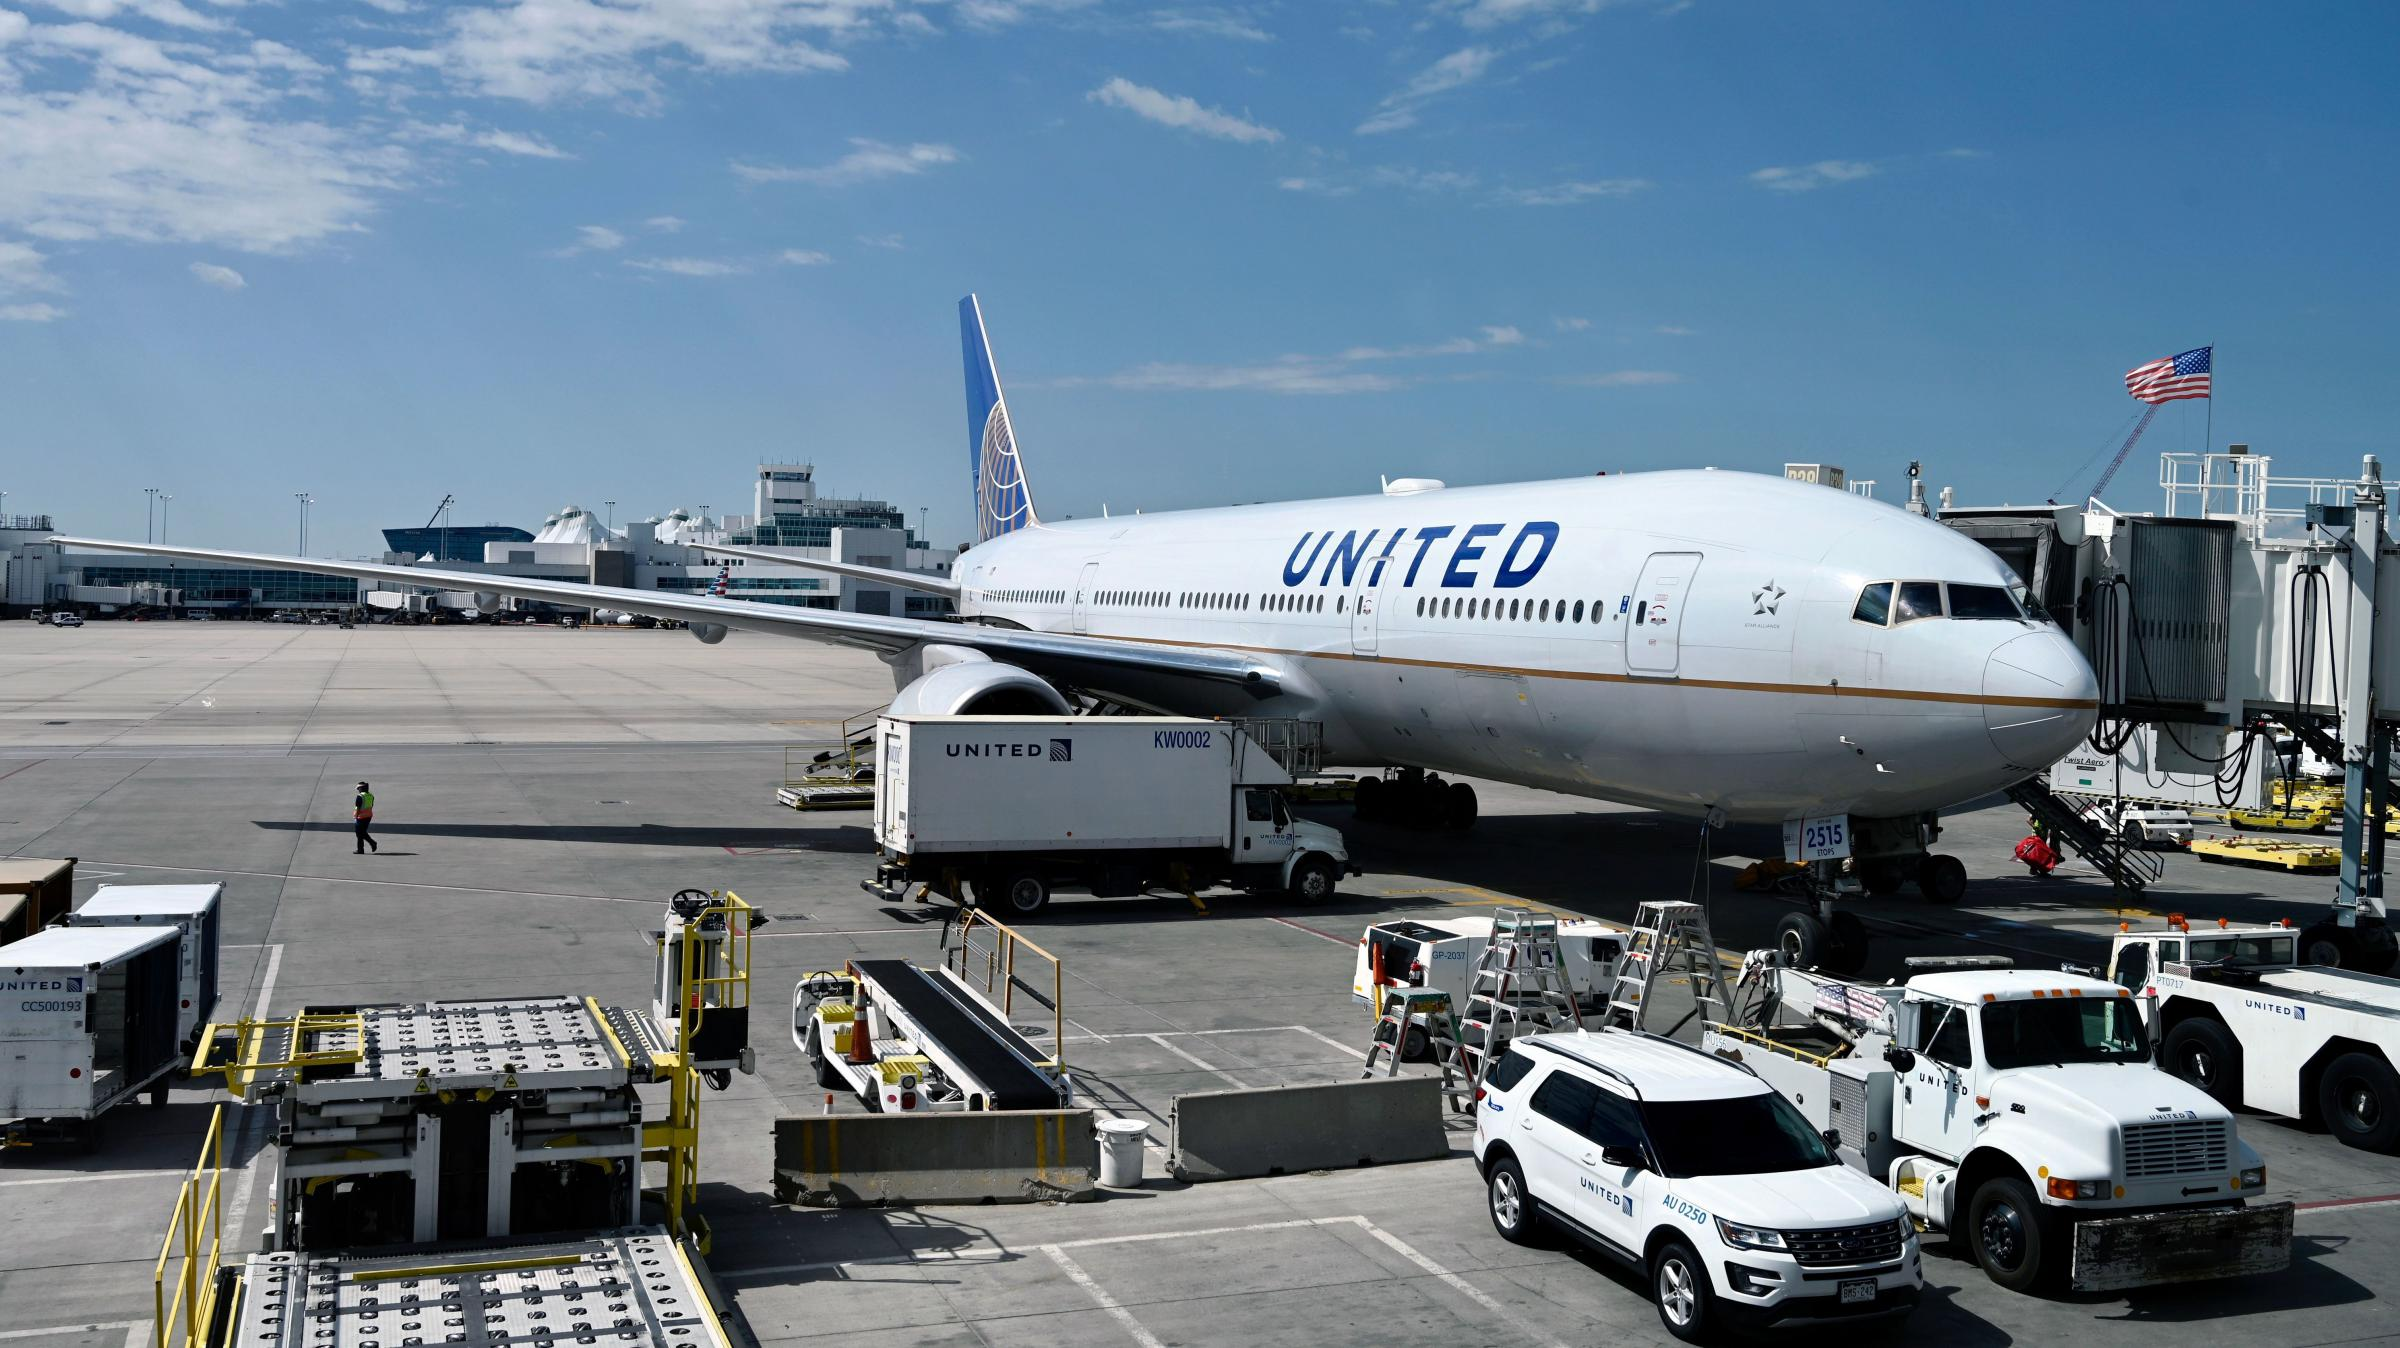 United Plans 16000 Furloughs As Airlines Cut Jobs During Pandemic Downturn